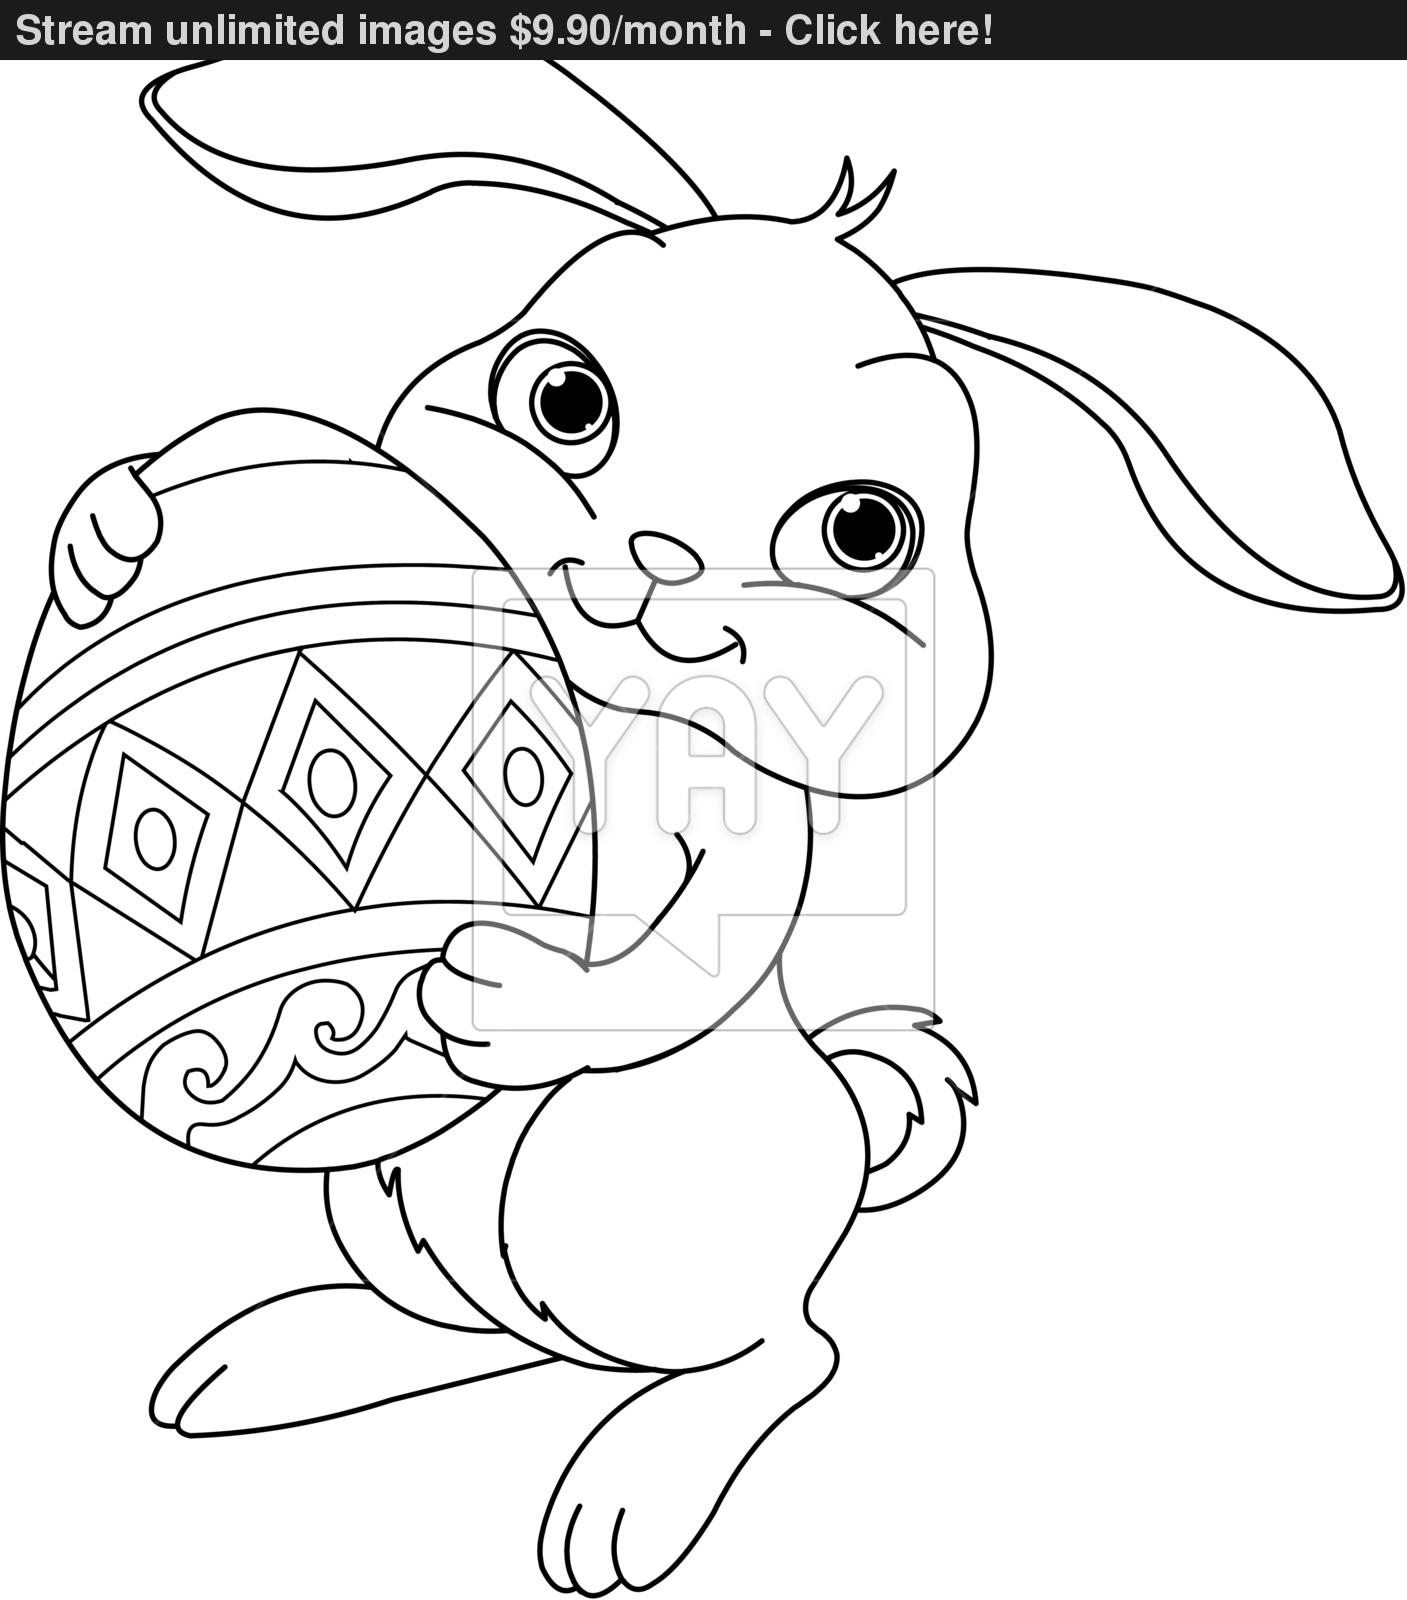 1407x1600 Easter Bunny Color Pages Scott Fay Easter Bunny Coloring